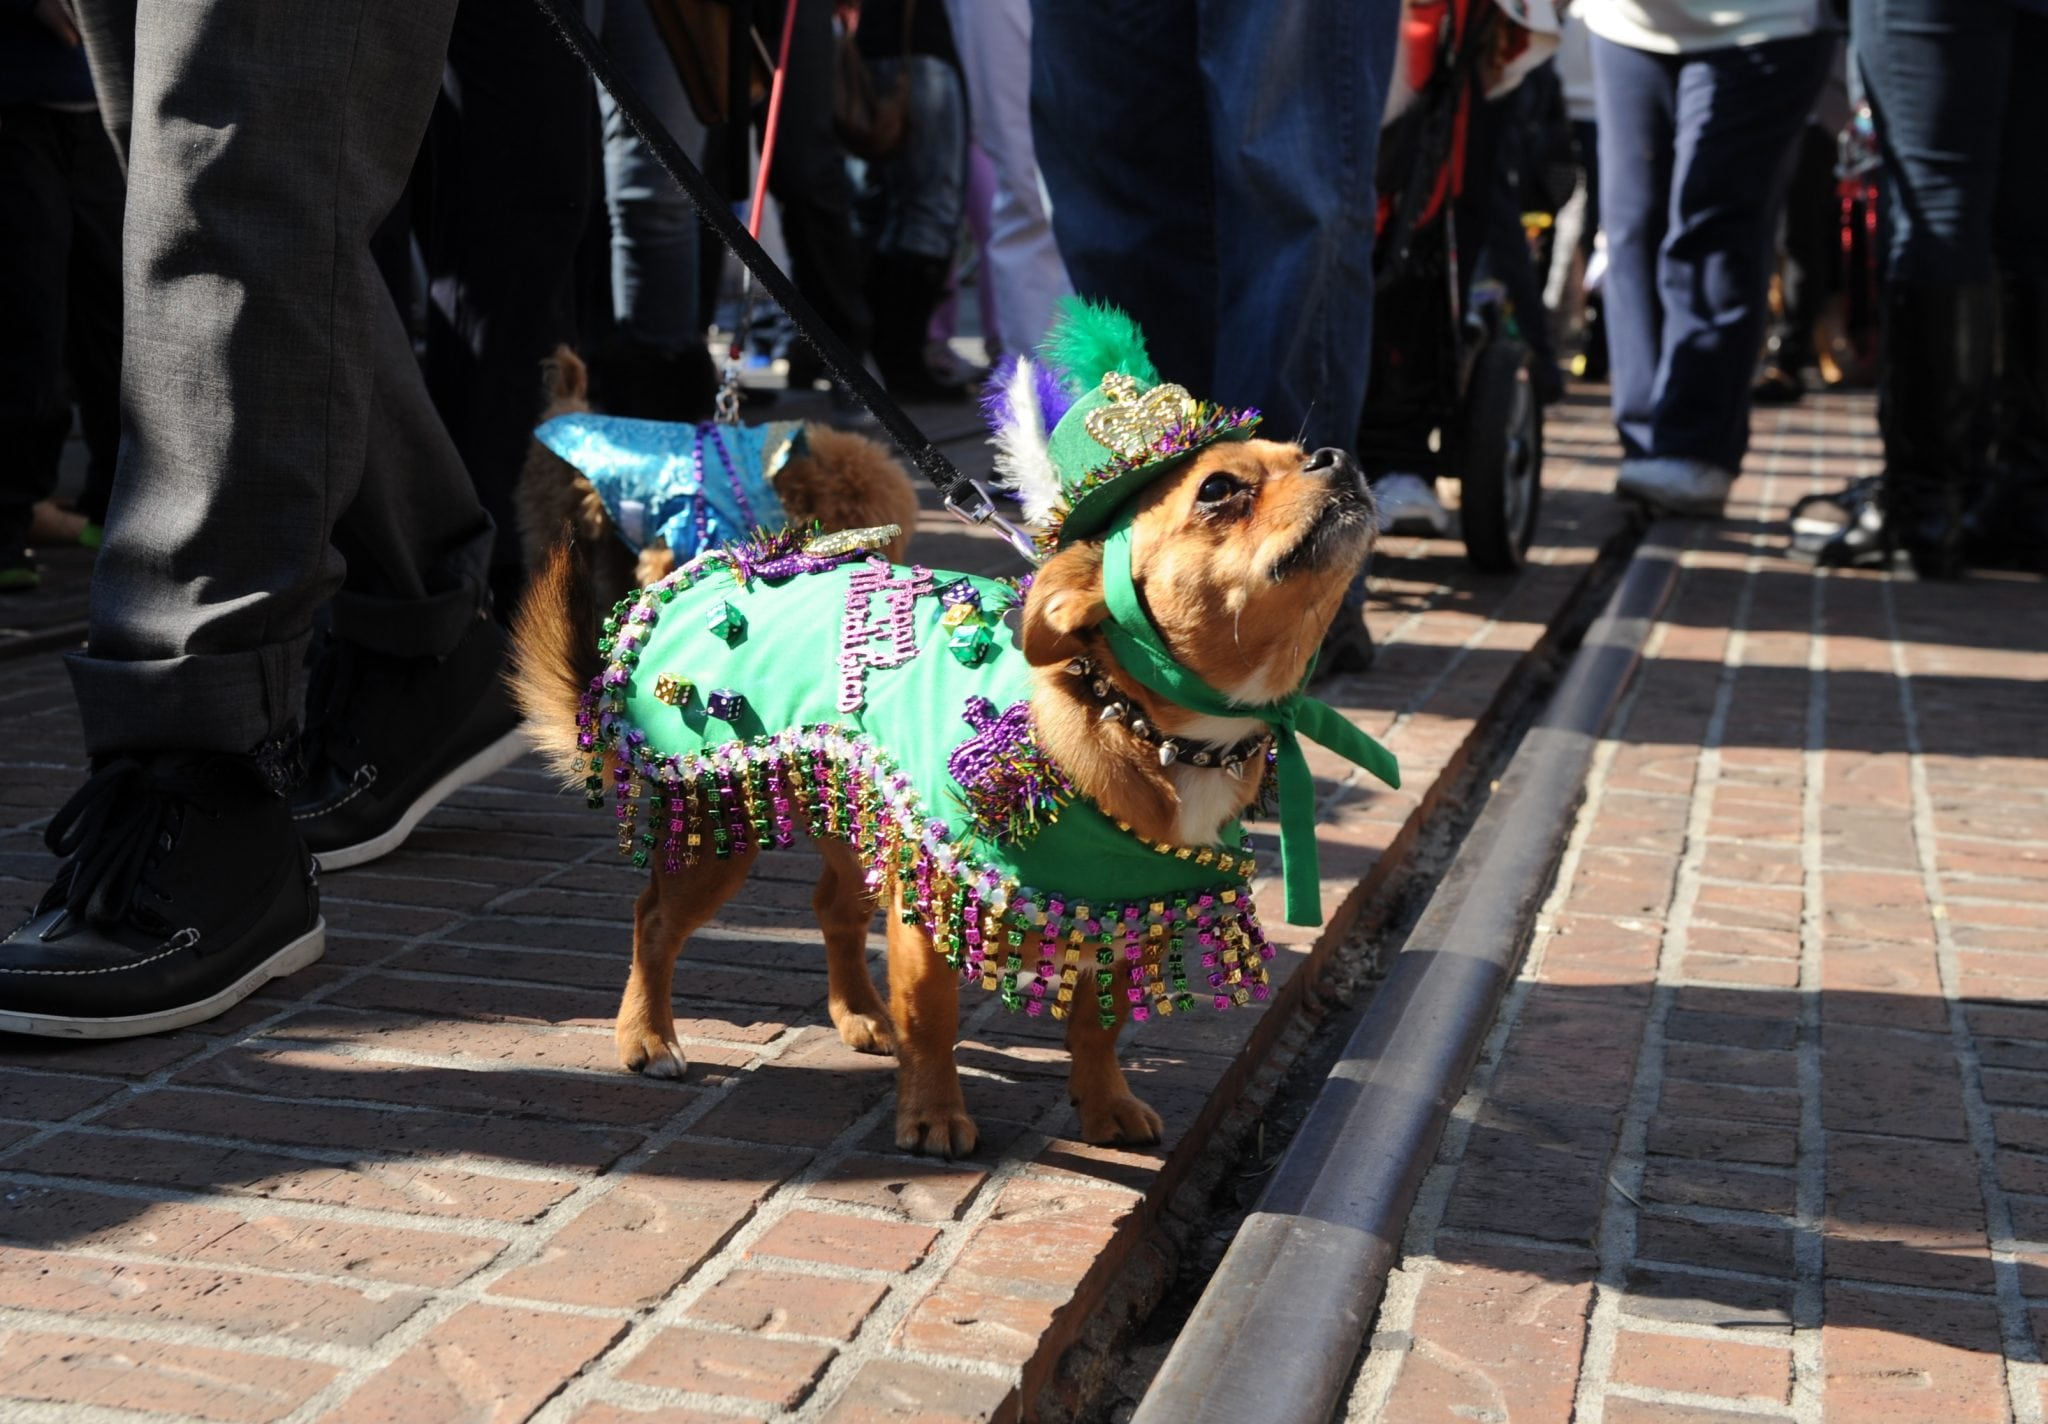 The Farmers Market's Mardi Gras Celebration